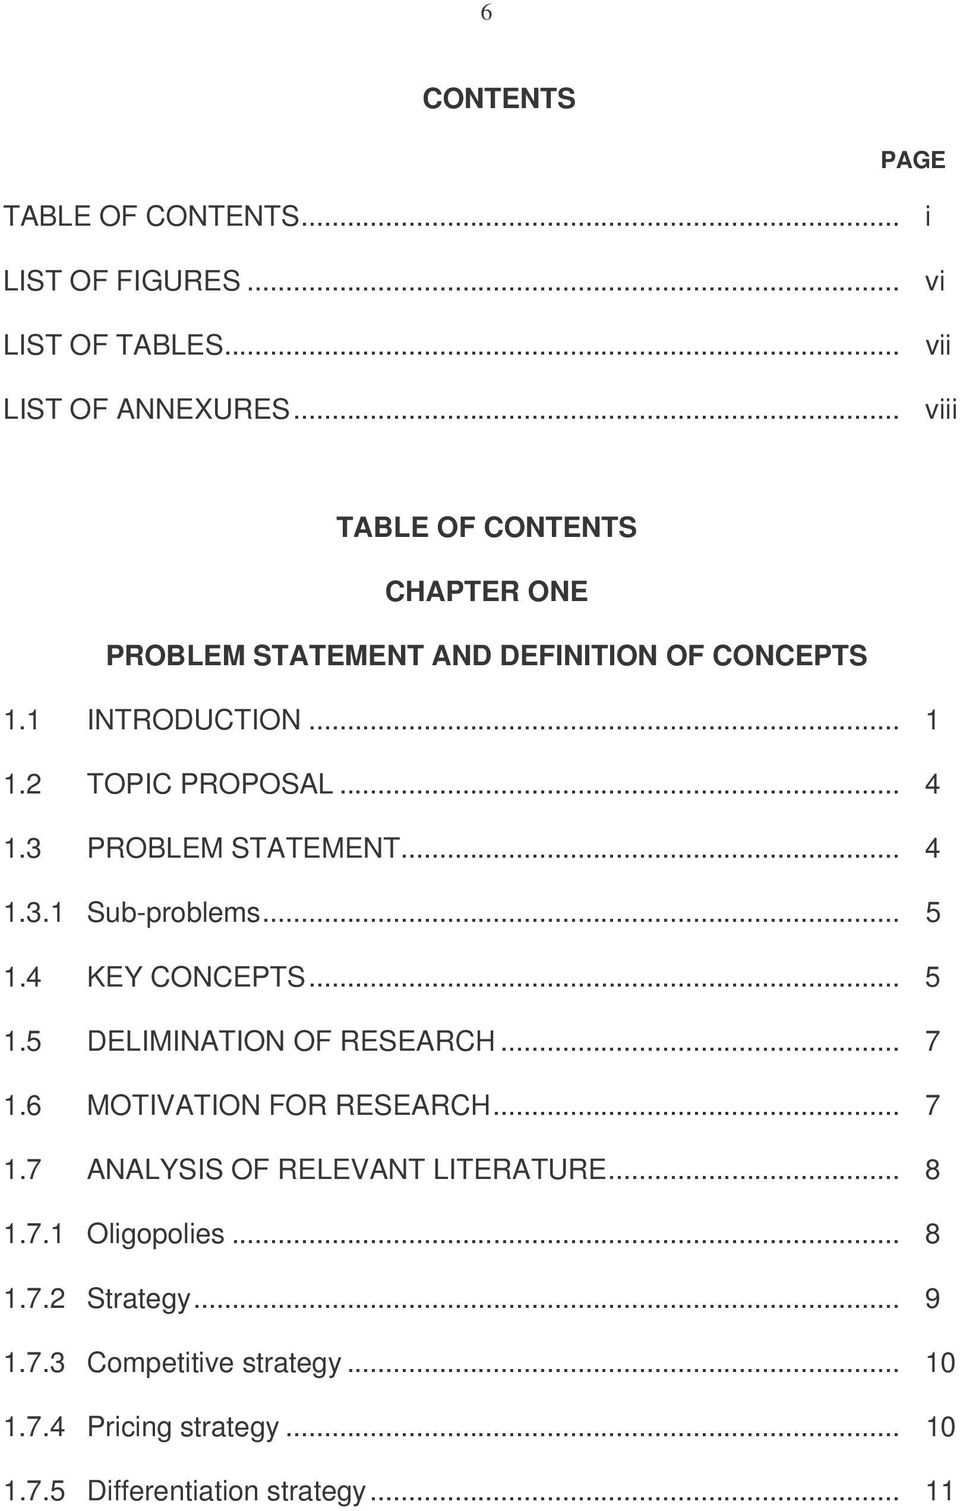 3 PROBLEM STATEMENT... 4 1.3.1 Sub-problems... 5 1.4 KEY CONCEPTS... 5 1.5 DELIMINATION OF RESEARCH... 7 1.